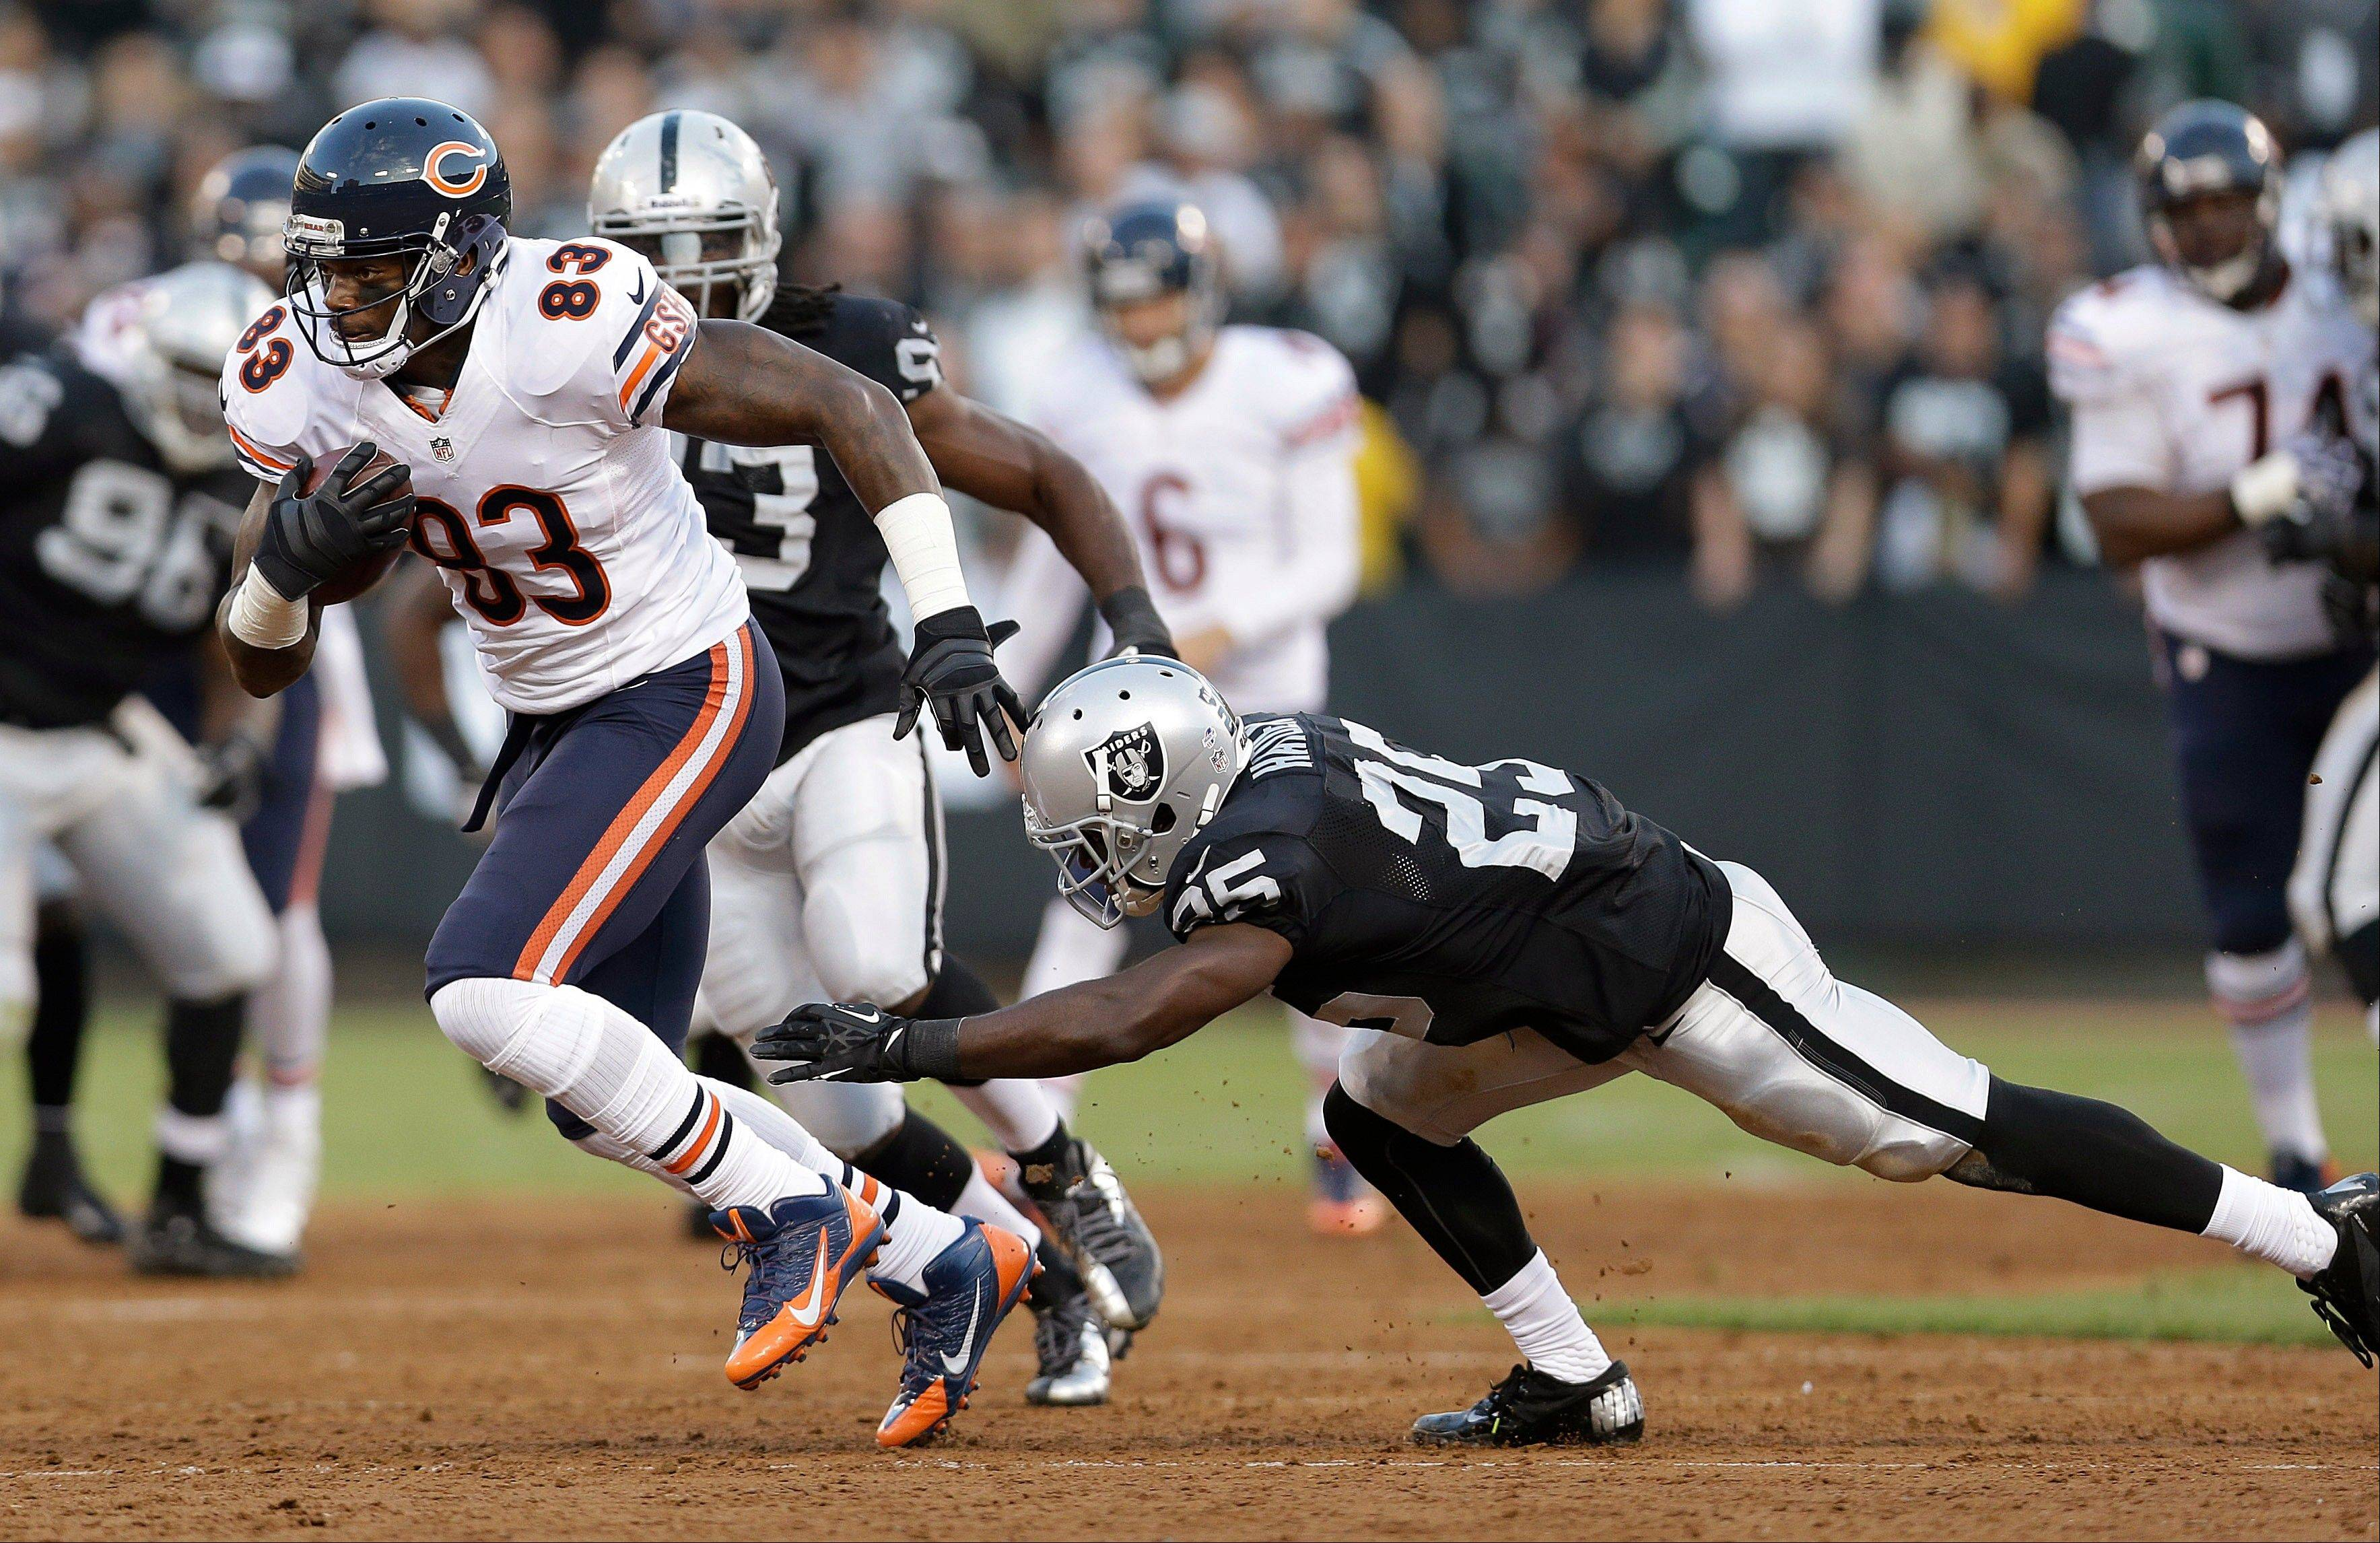 Chicago Bears tight end Martellus Bennett (83) runs past Oakland Raiders cornerback D.J. Hayden (25) during the first quarter.